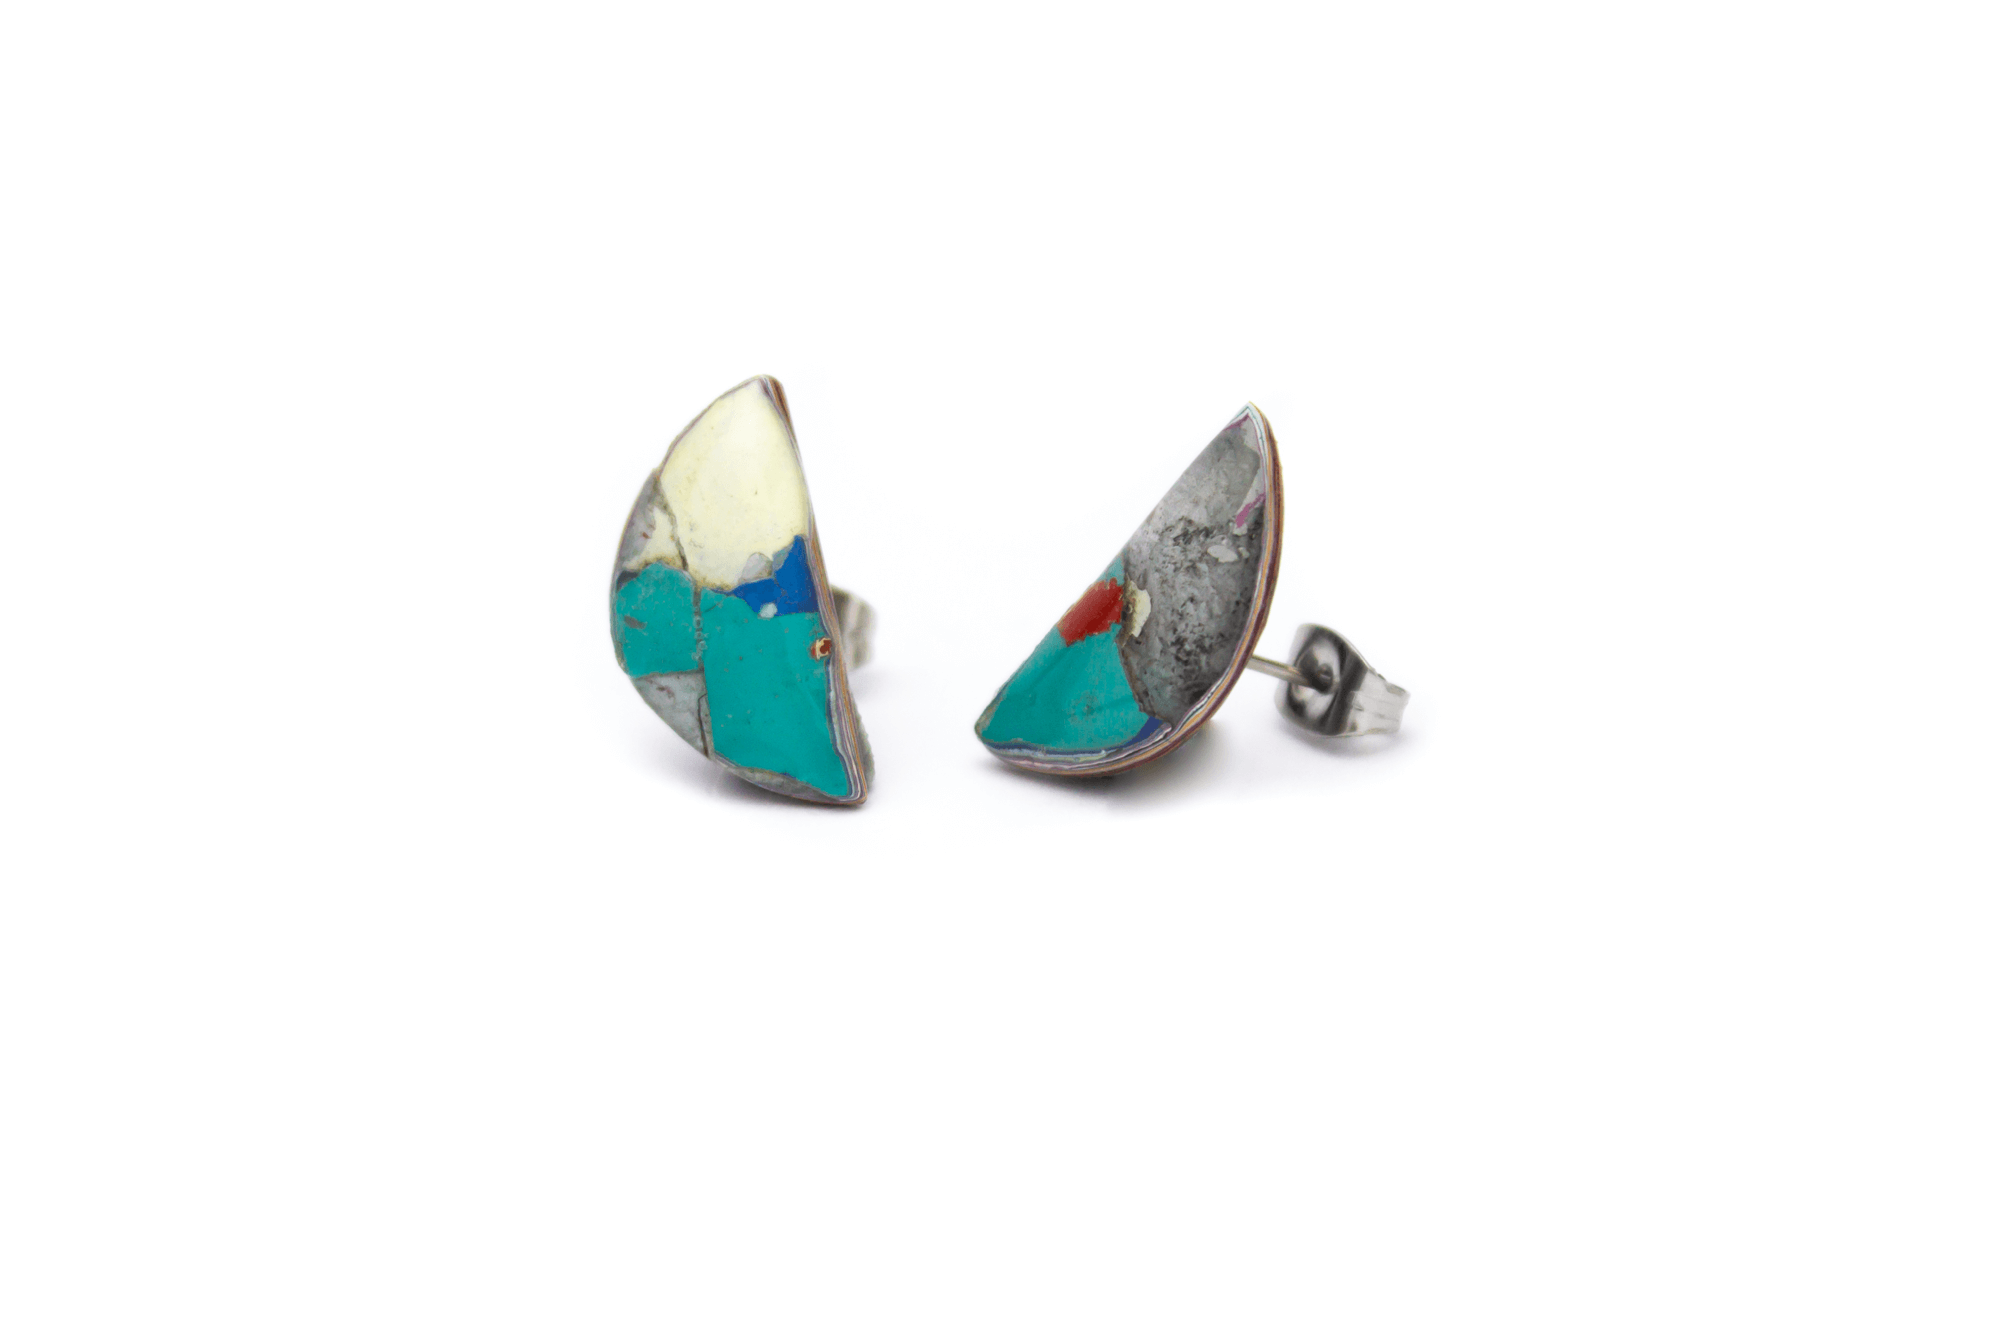 Unique graffiti earrings. One-of-a-kind and handmade in Melbourne from locally sourced, recycled materials.